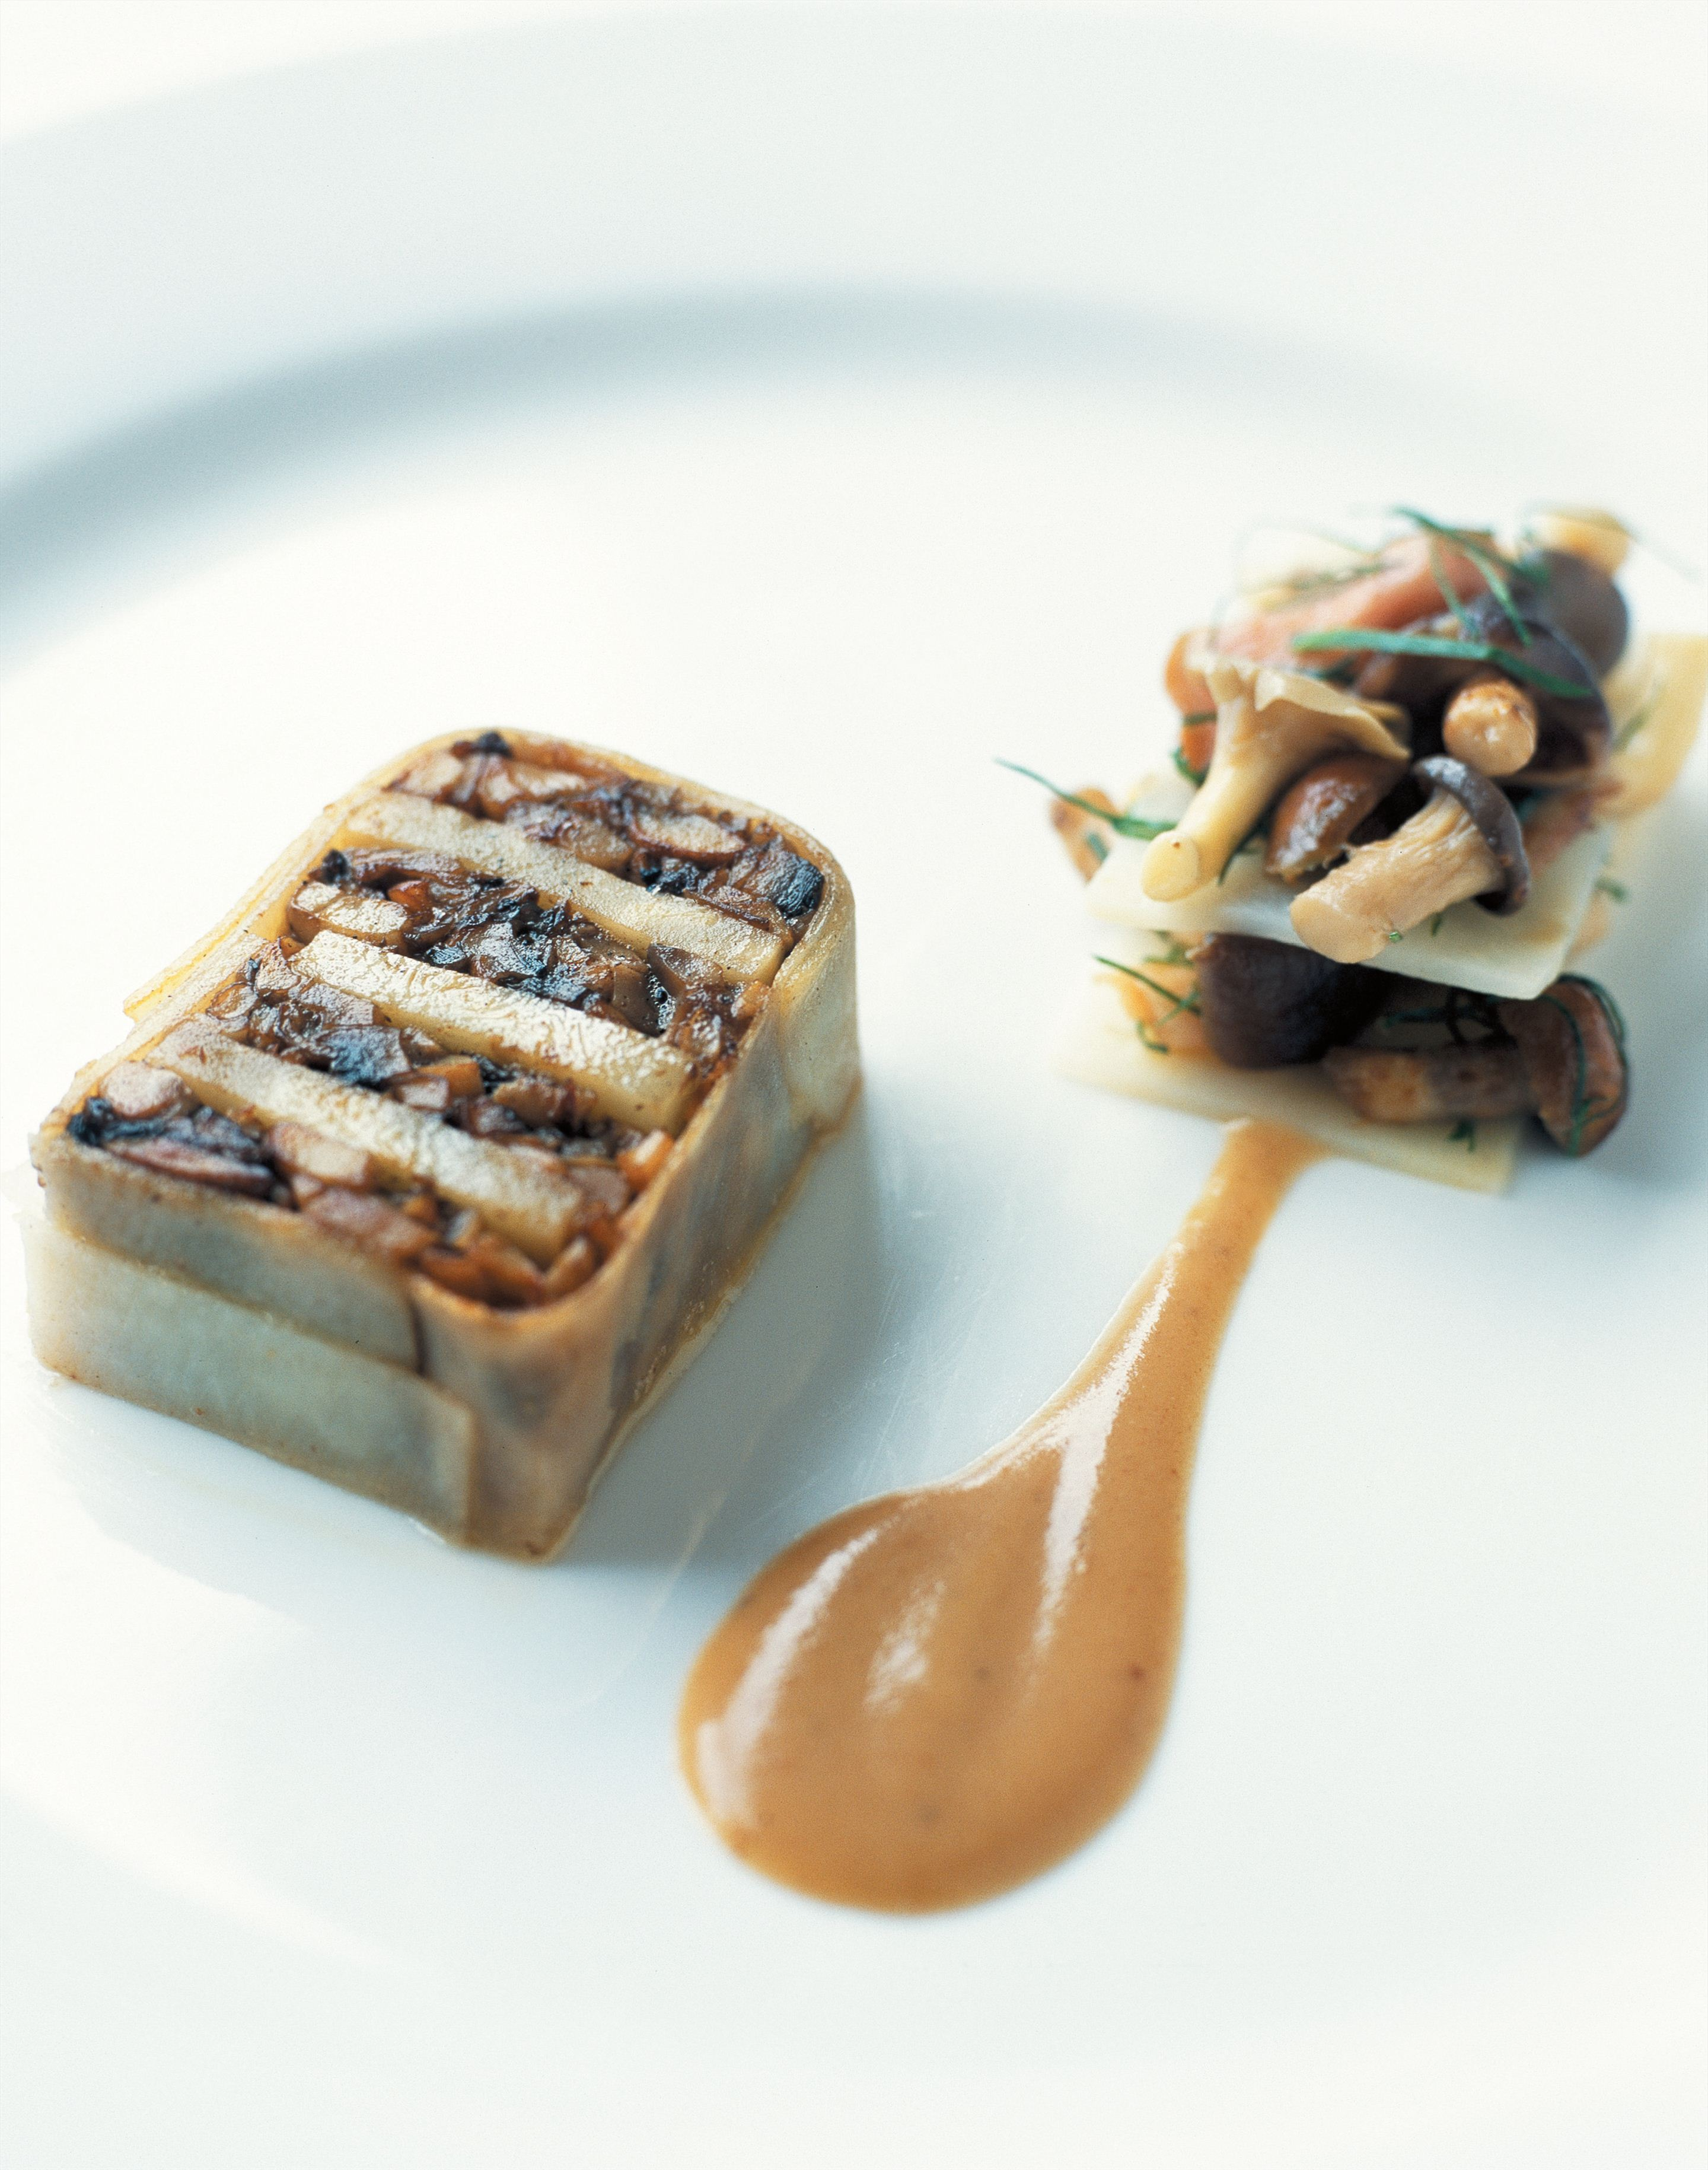 Terrine and mille feuille of mushroom and confit celeriac